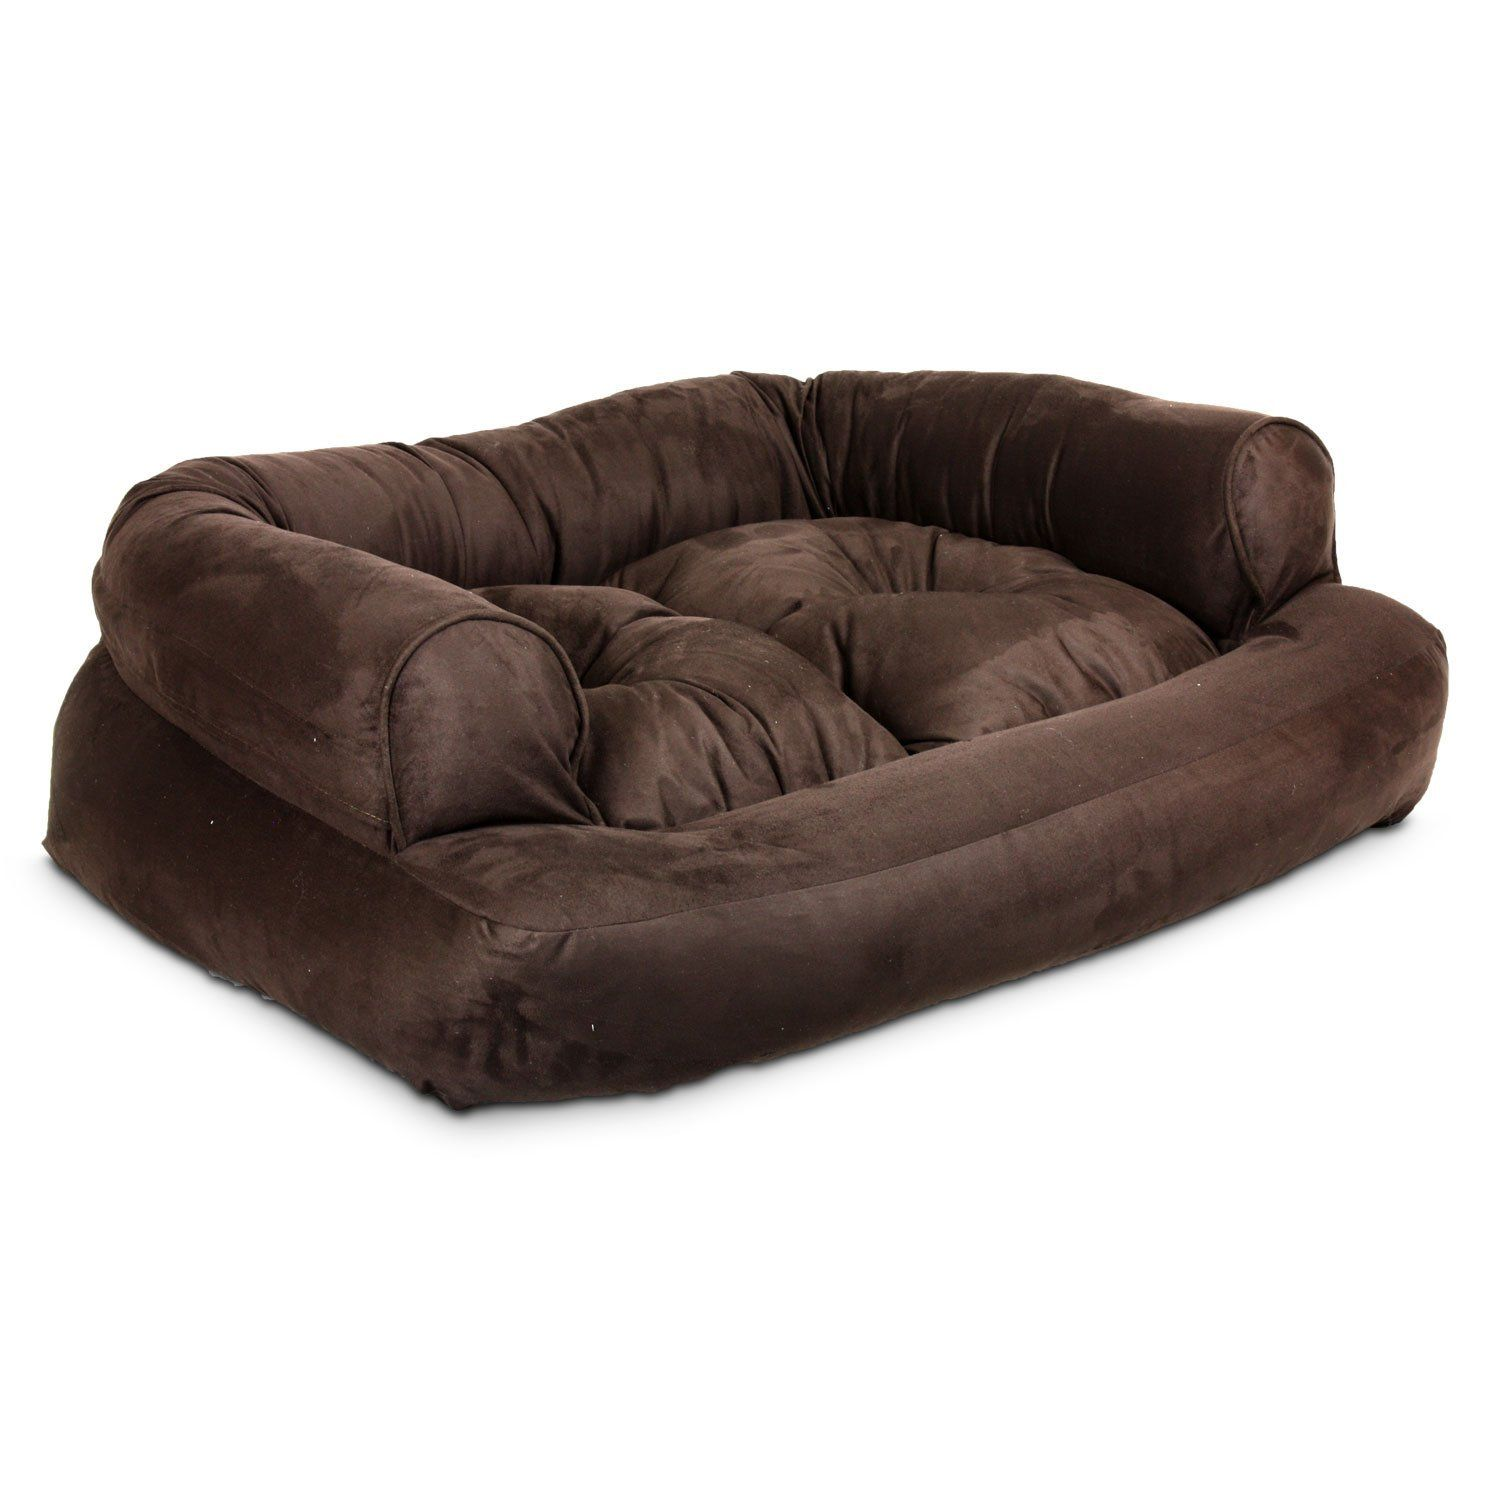 Snoozer Overstuffed Dog Sofa Bed. Love The Fudge Color! WebNuggetz.com